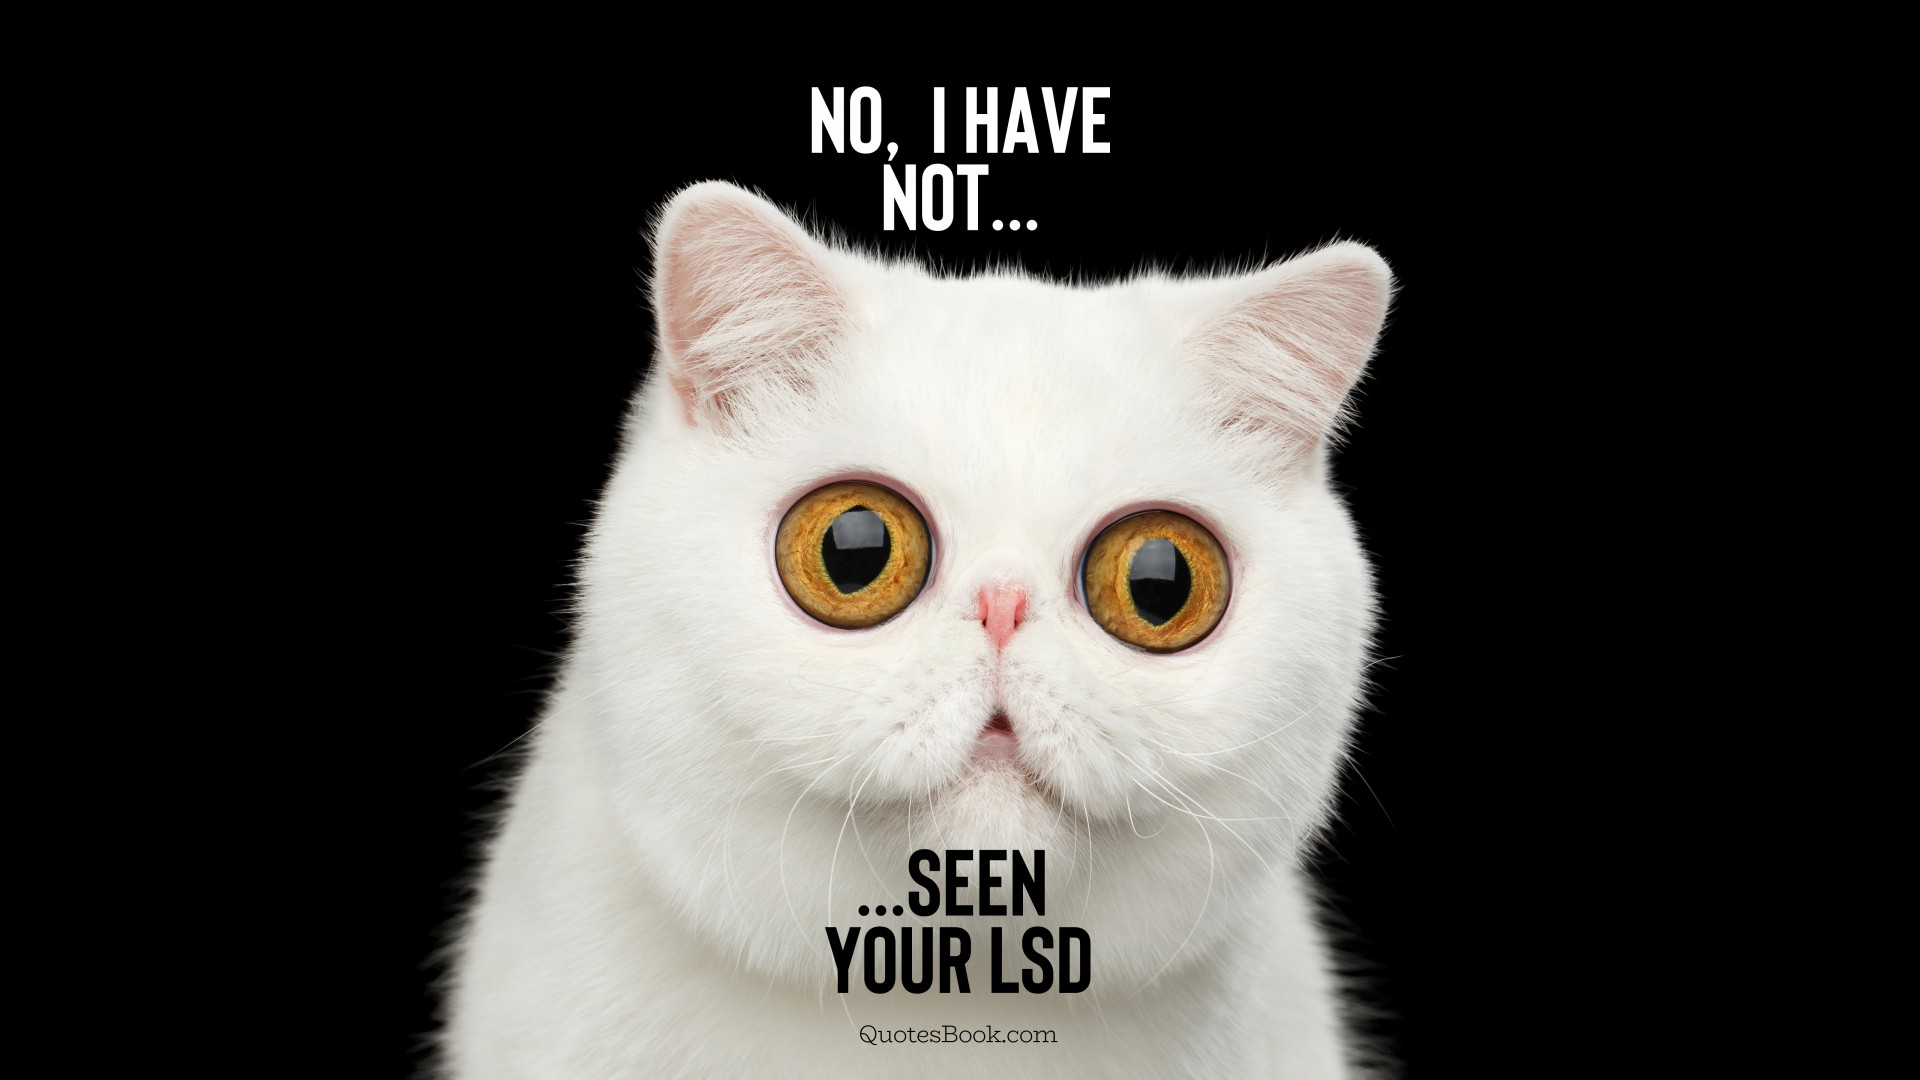 No, I haven't seen your LSD - QuotesBook